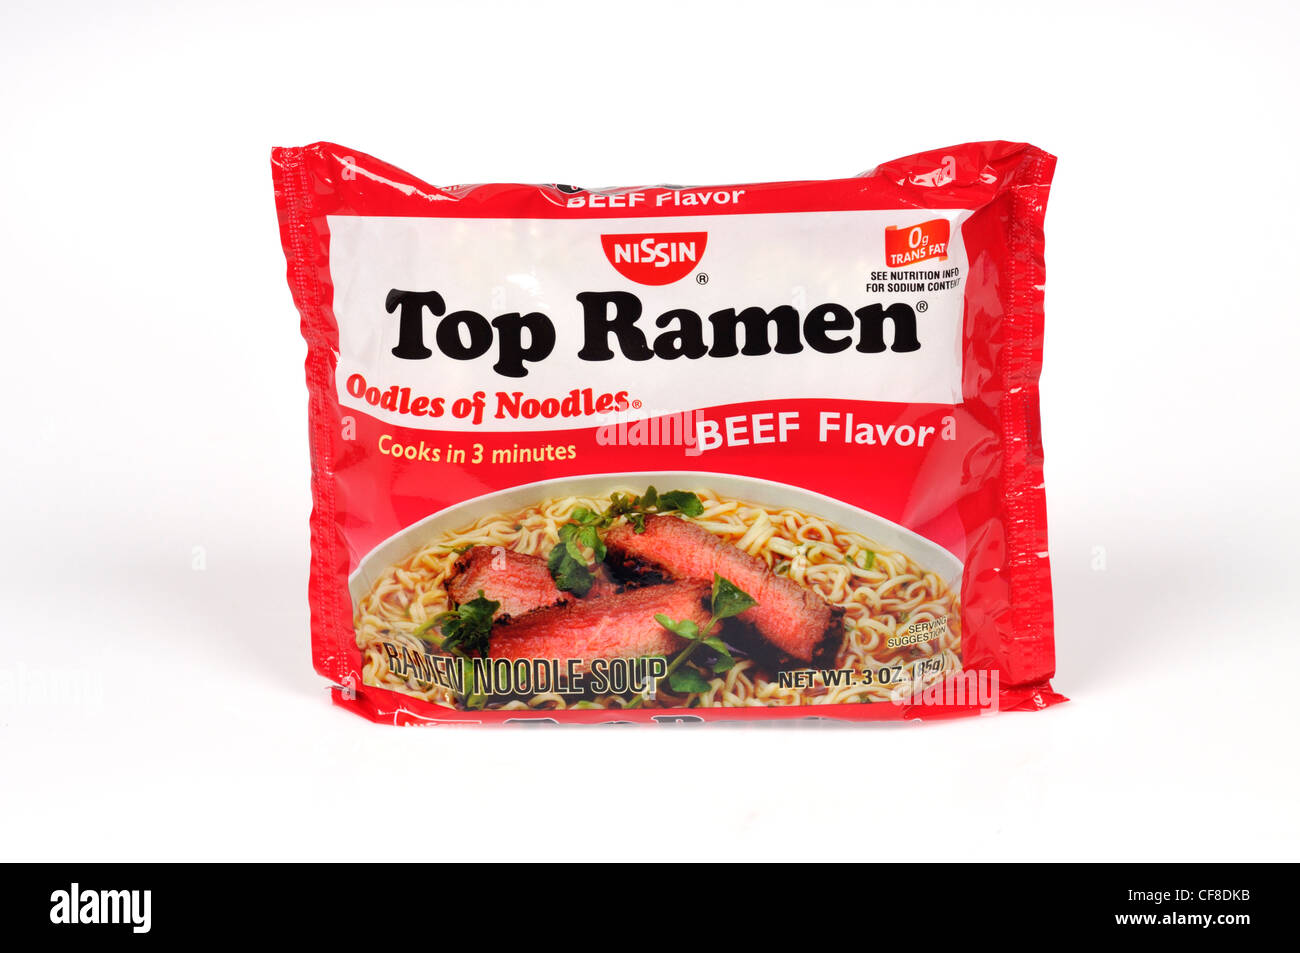 Package of instant top ramen noodles soup oodles of noodles beef flavor by Nissin on white background cut out. - Stock Image